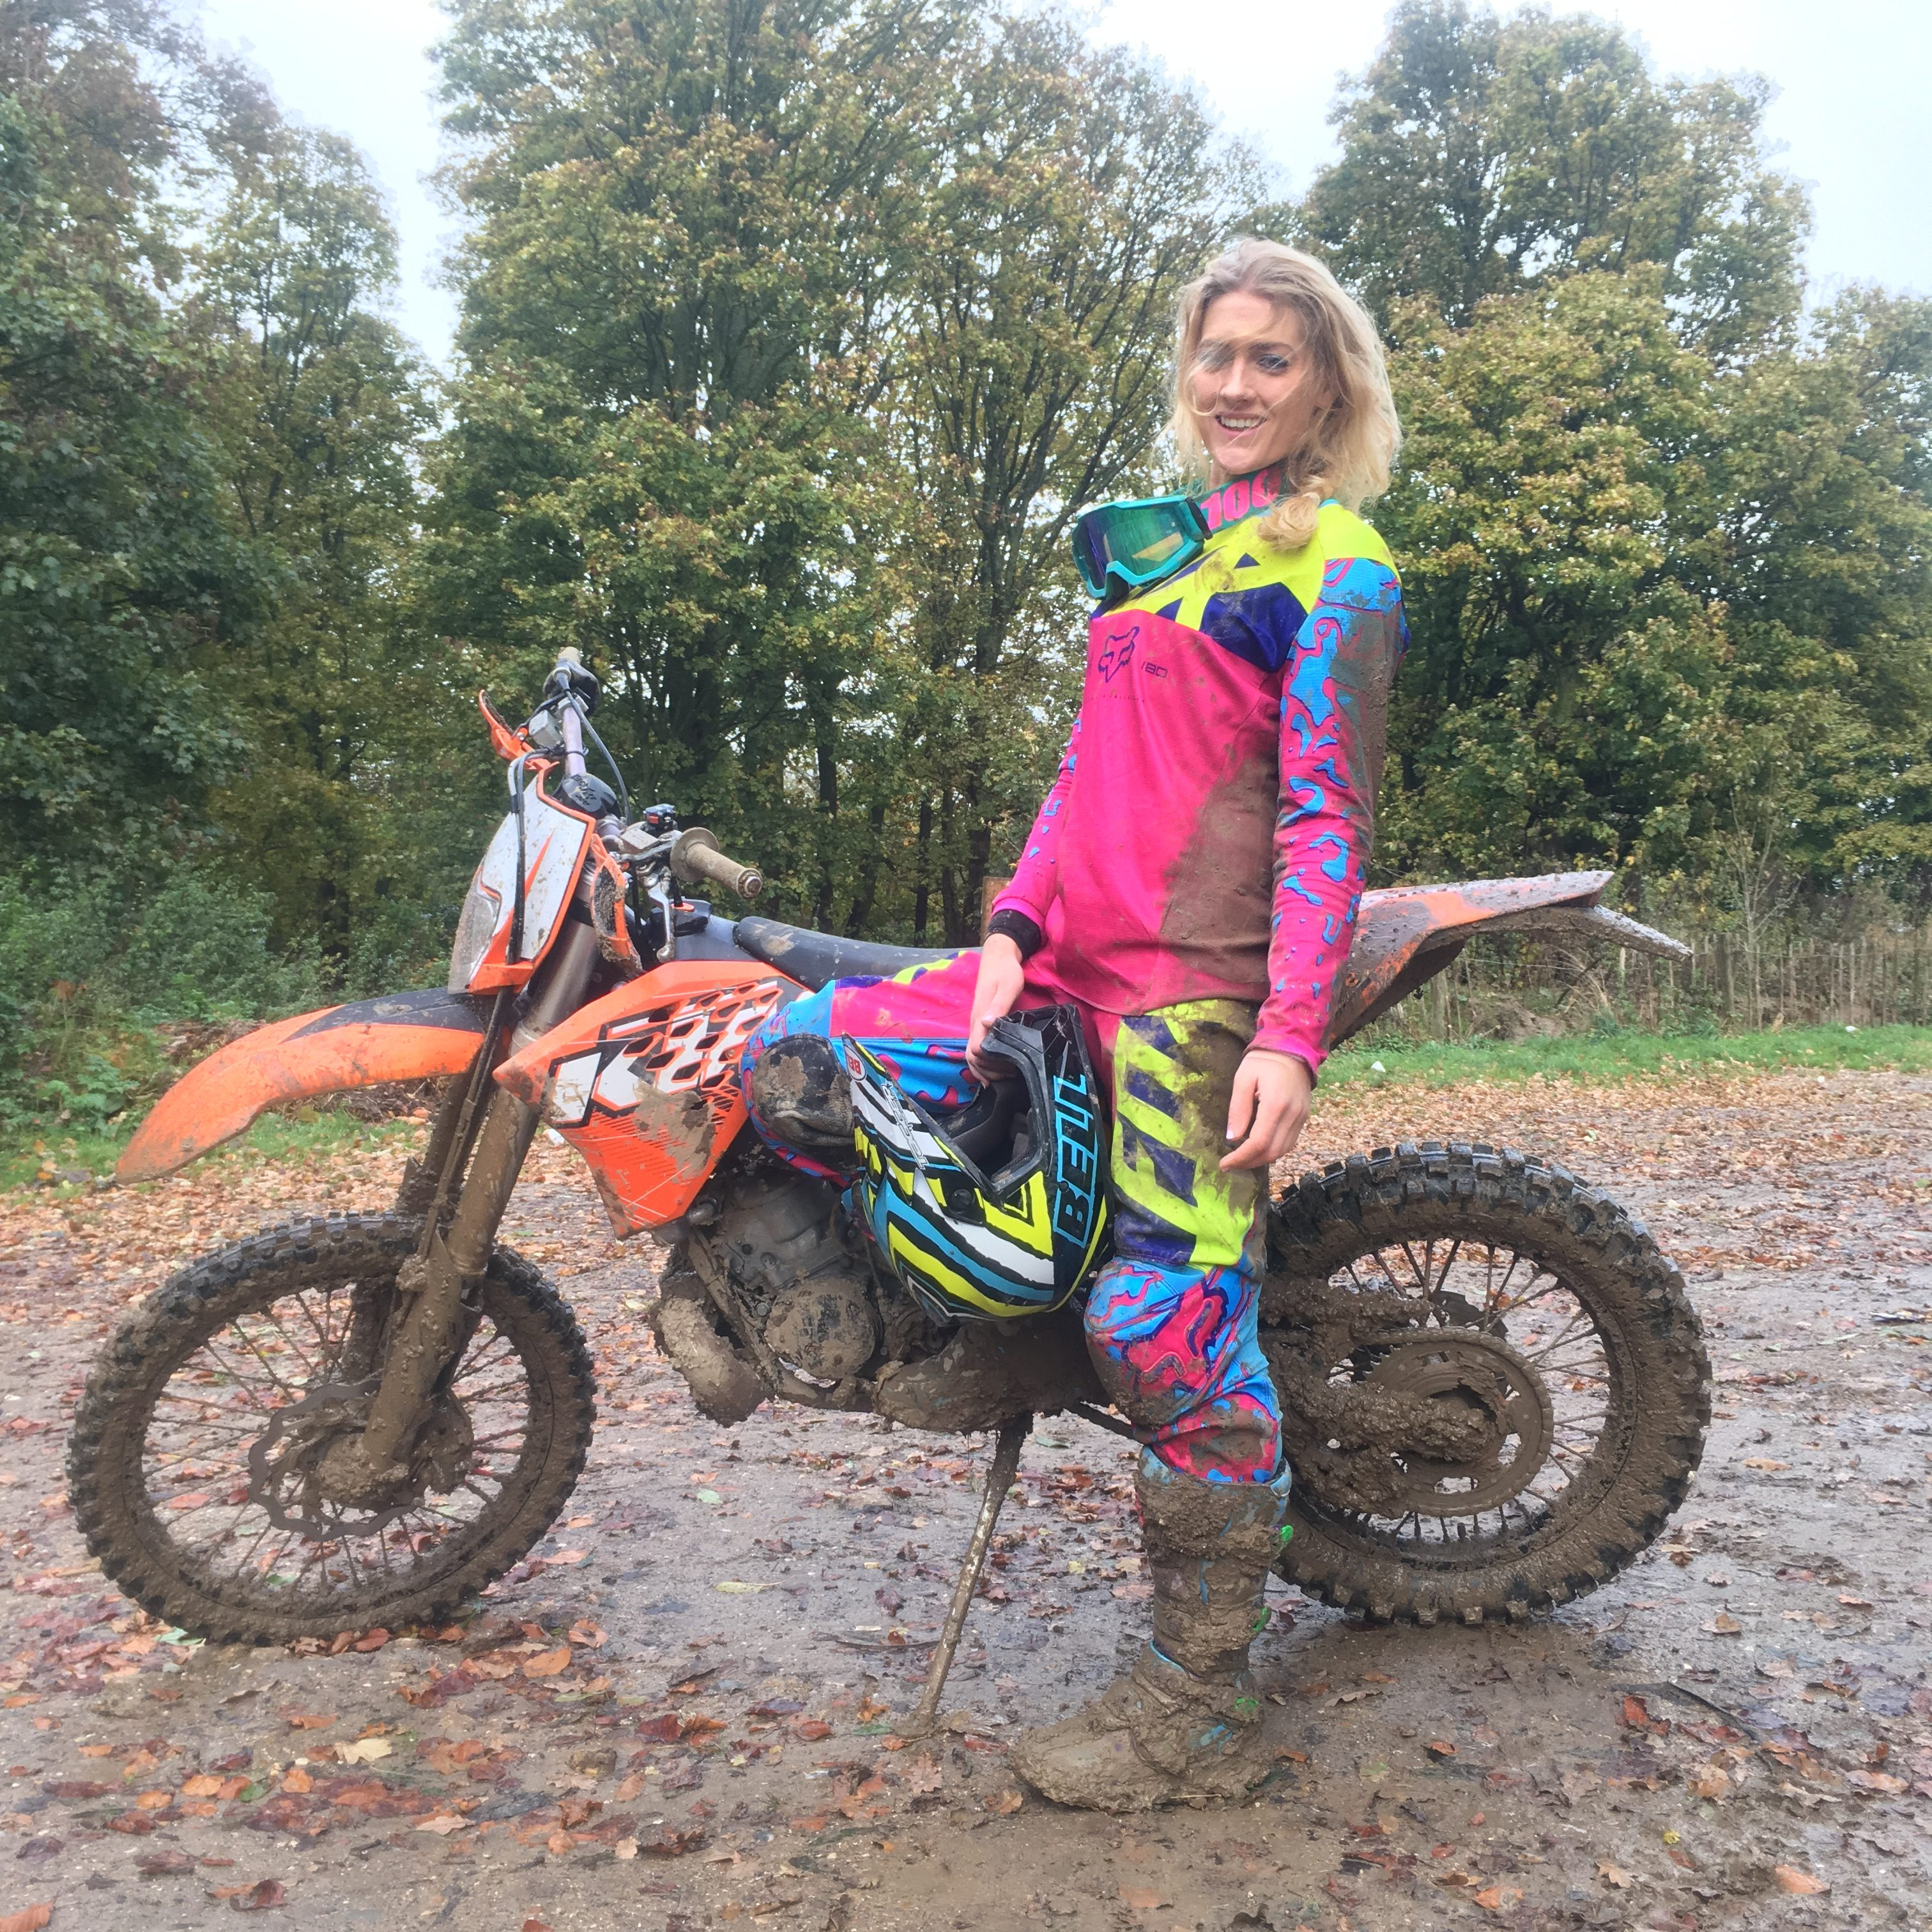 Click on the image to see my KTM EXC parts & kit